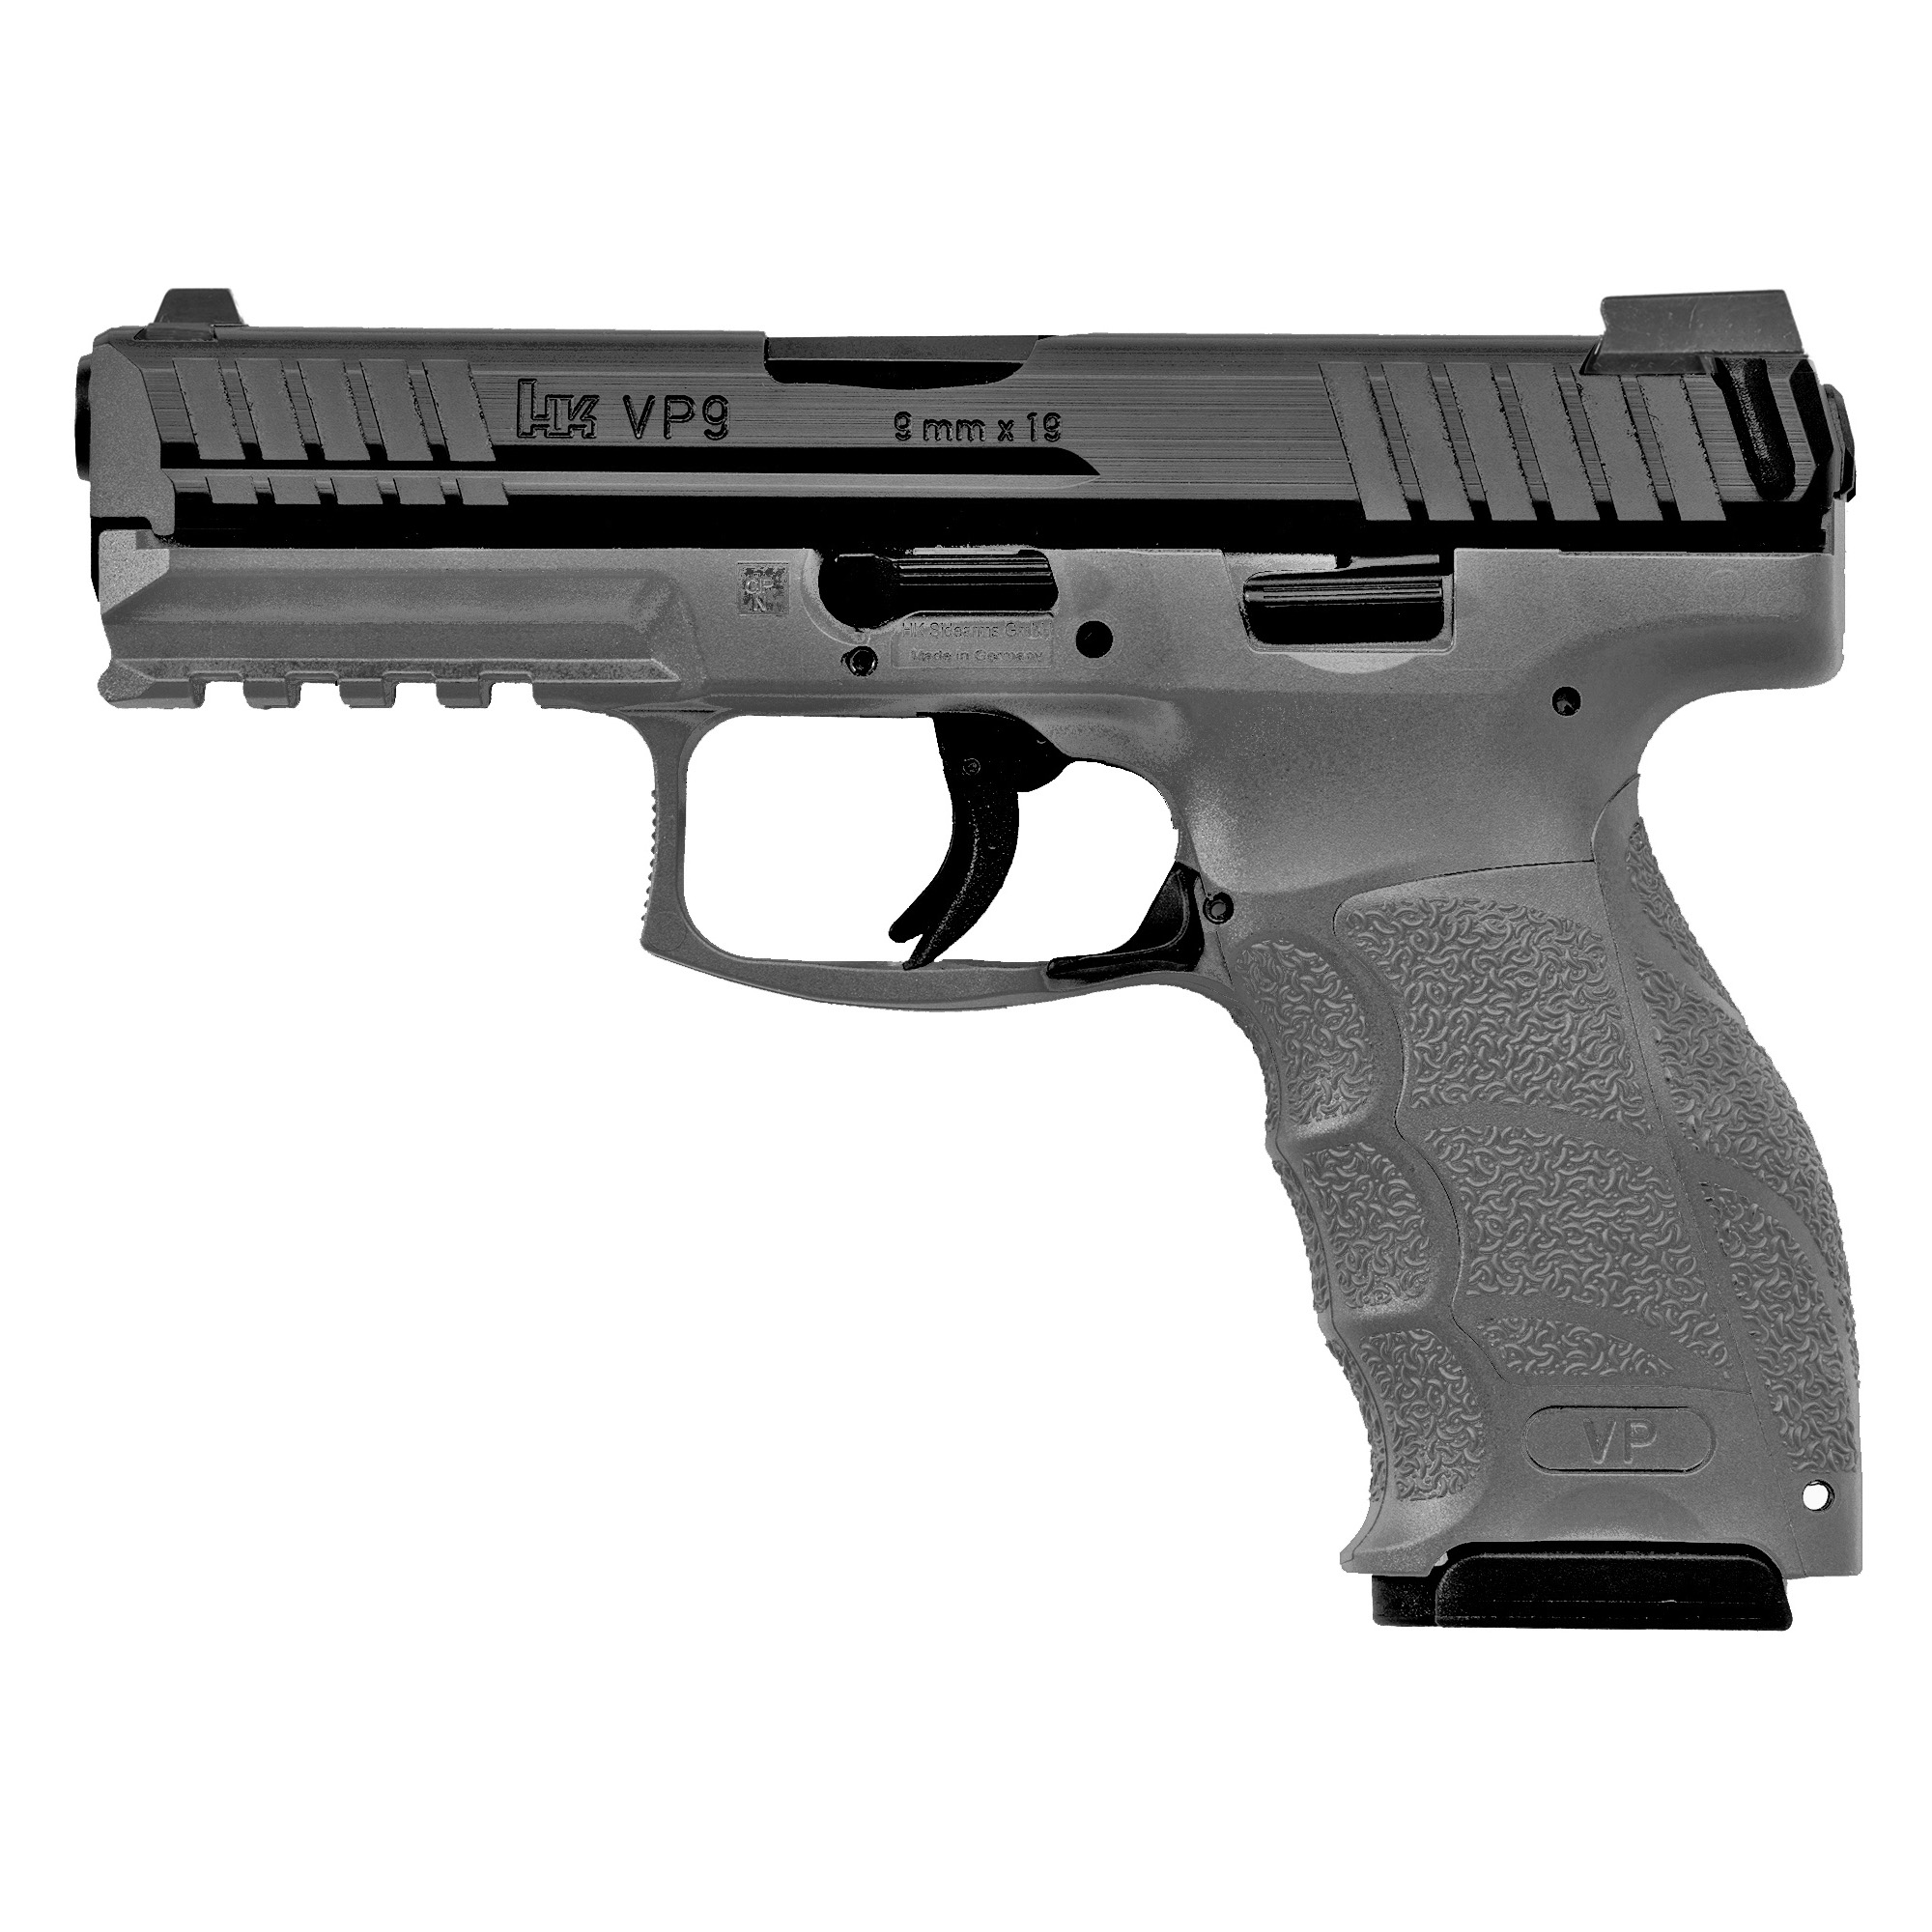 """In development for more than four years"""" the VP9 is Heckler & Koch's latest handgun and the first striker fired HK since the renowned P7 series pistols were introduced in the 1980s. The VP9 is well-suited for civilian sport shooting"""" security"""" military"""" and law enforcement use."""